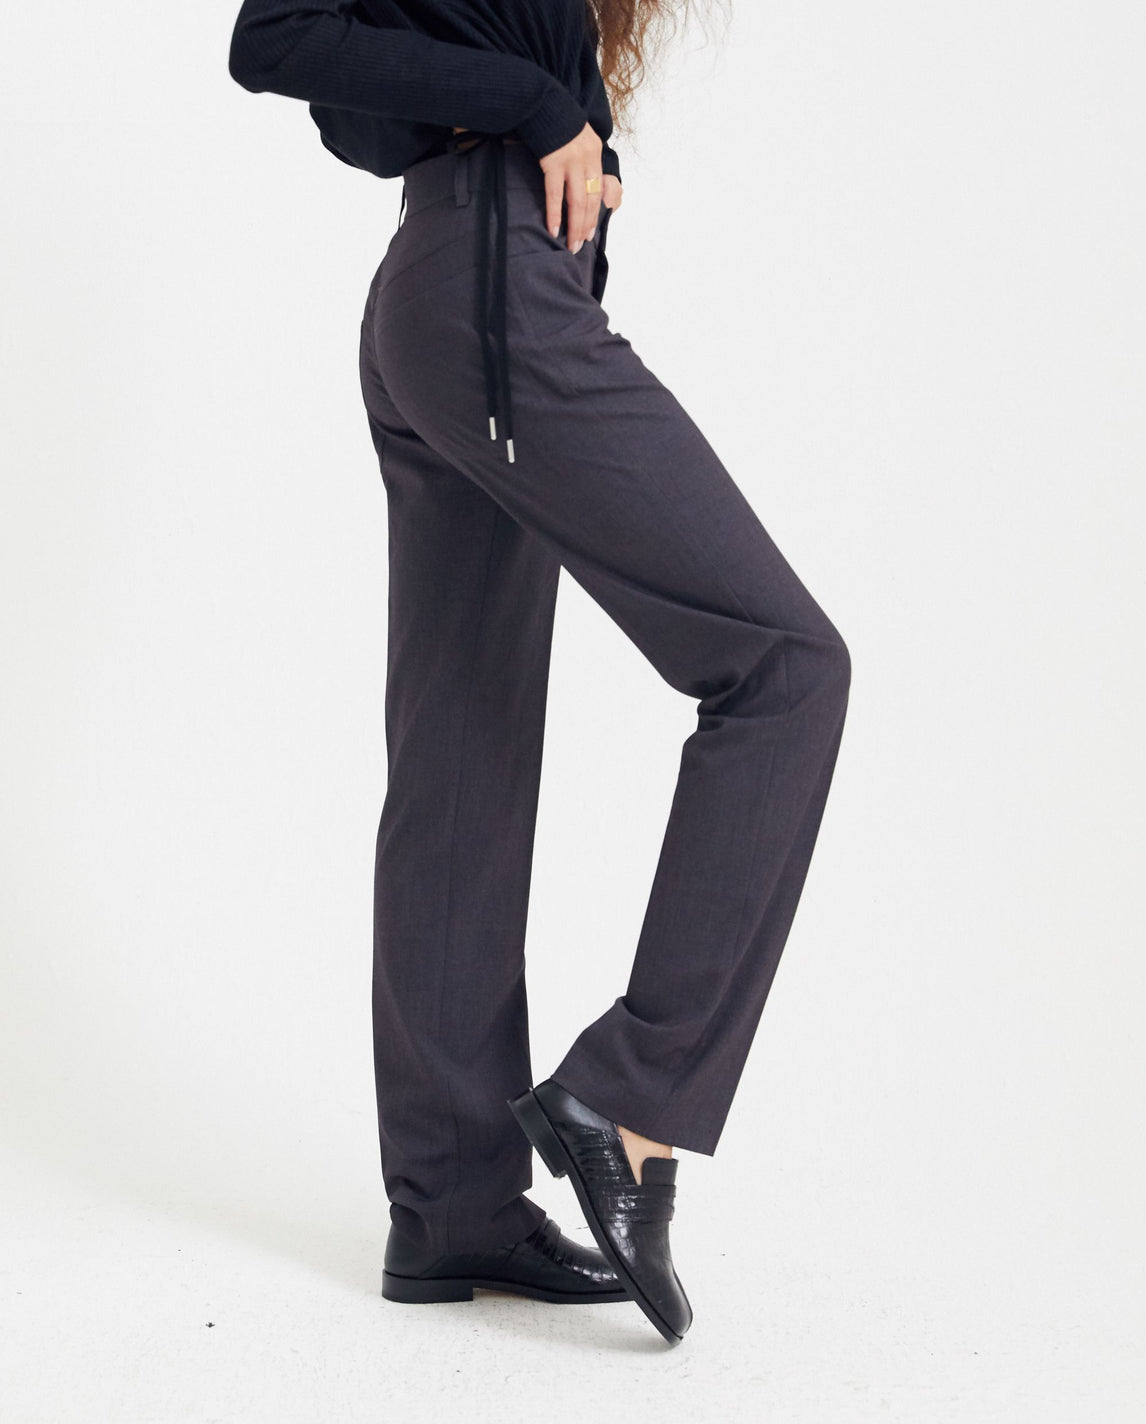 Fitted Trousers - Grey UNISEX GOOMHEO